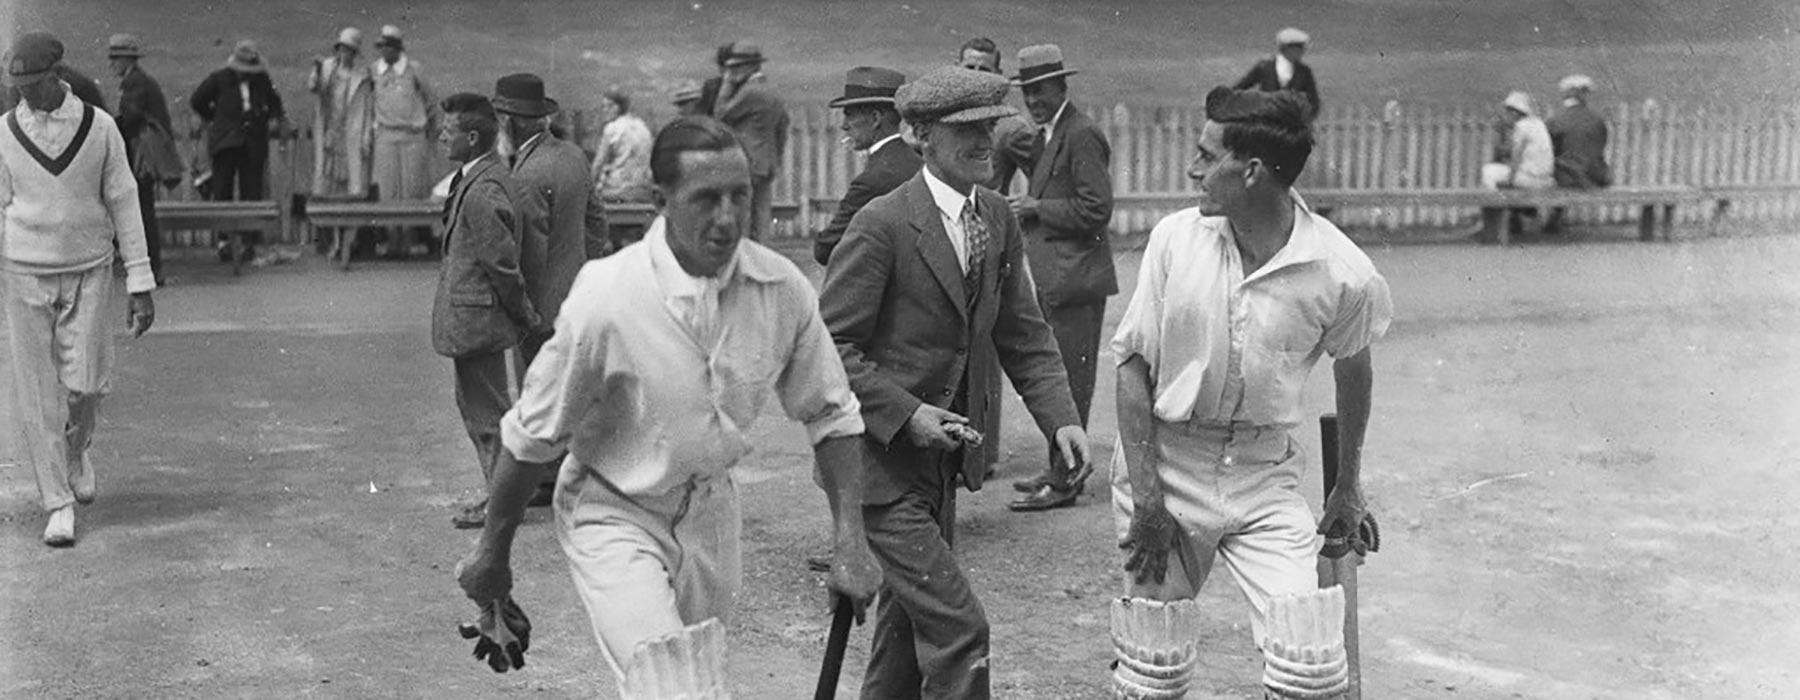 Men leave the cricket pitch, 1928